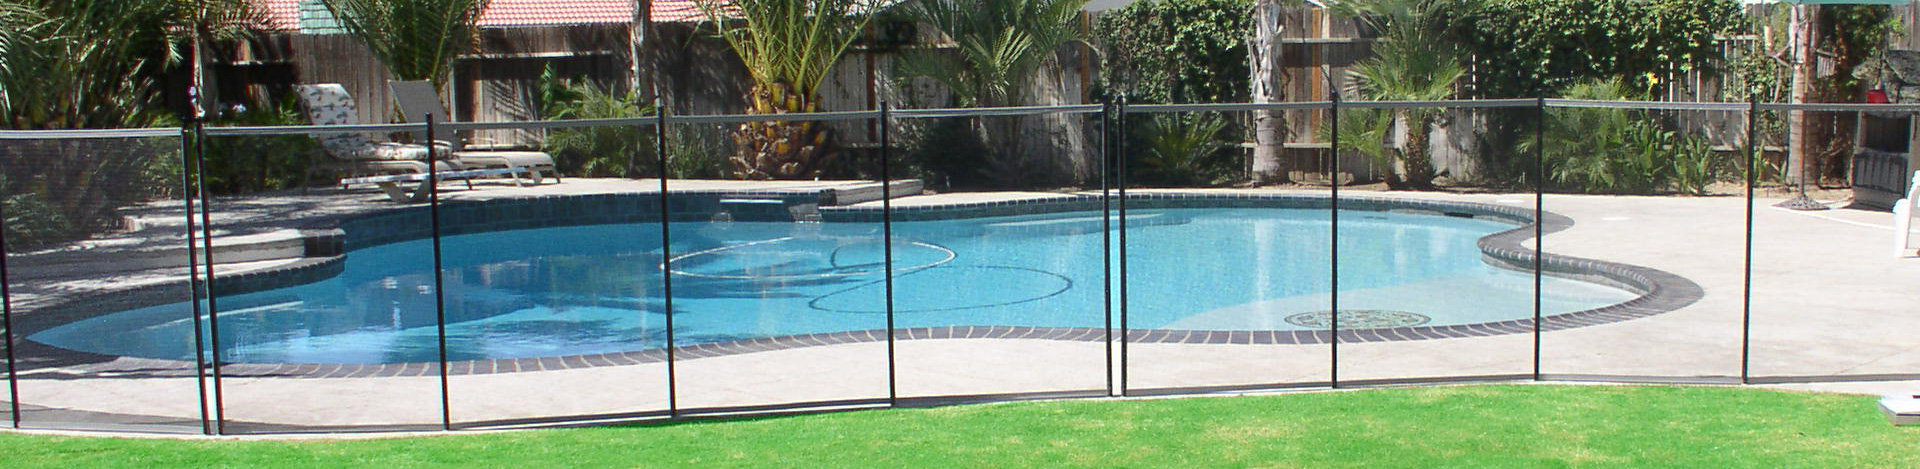 The Safest Pool Fence With Self-Closing Pool Gate ...